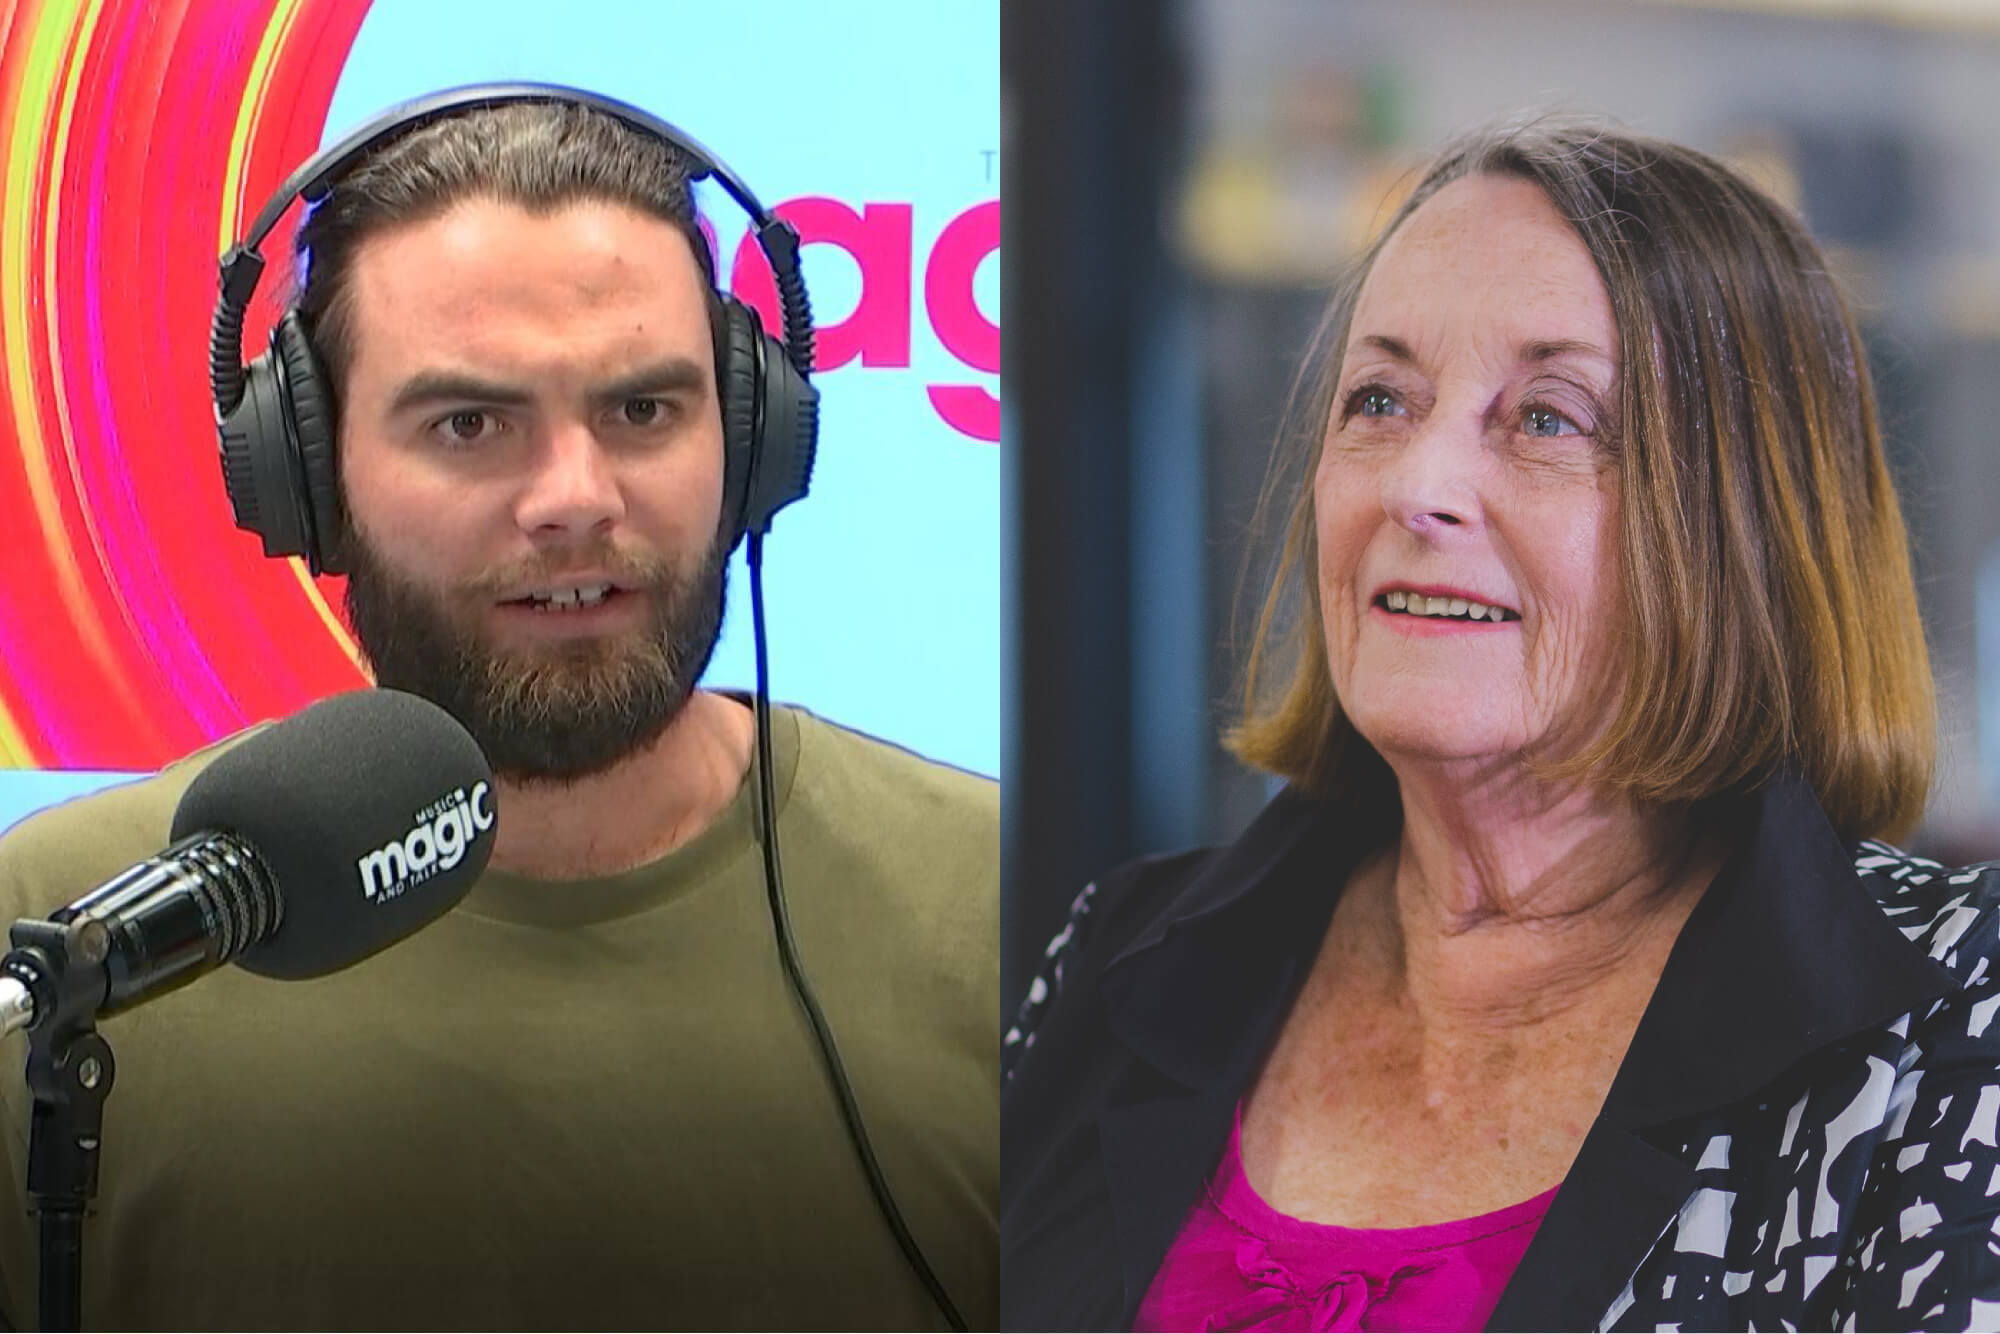 Magic-Talk-DefendNZ-Bioethics-Professor-outlines-key-ethical-flaws-with-euthanasia-in-exclusive-interview-with-Ryan-Bridge.jpg